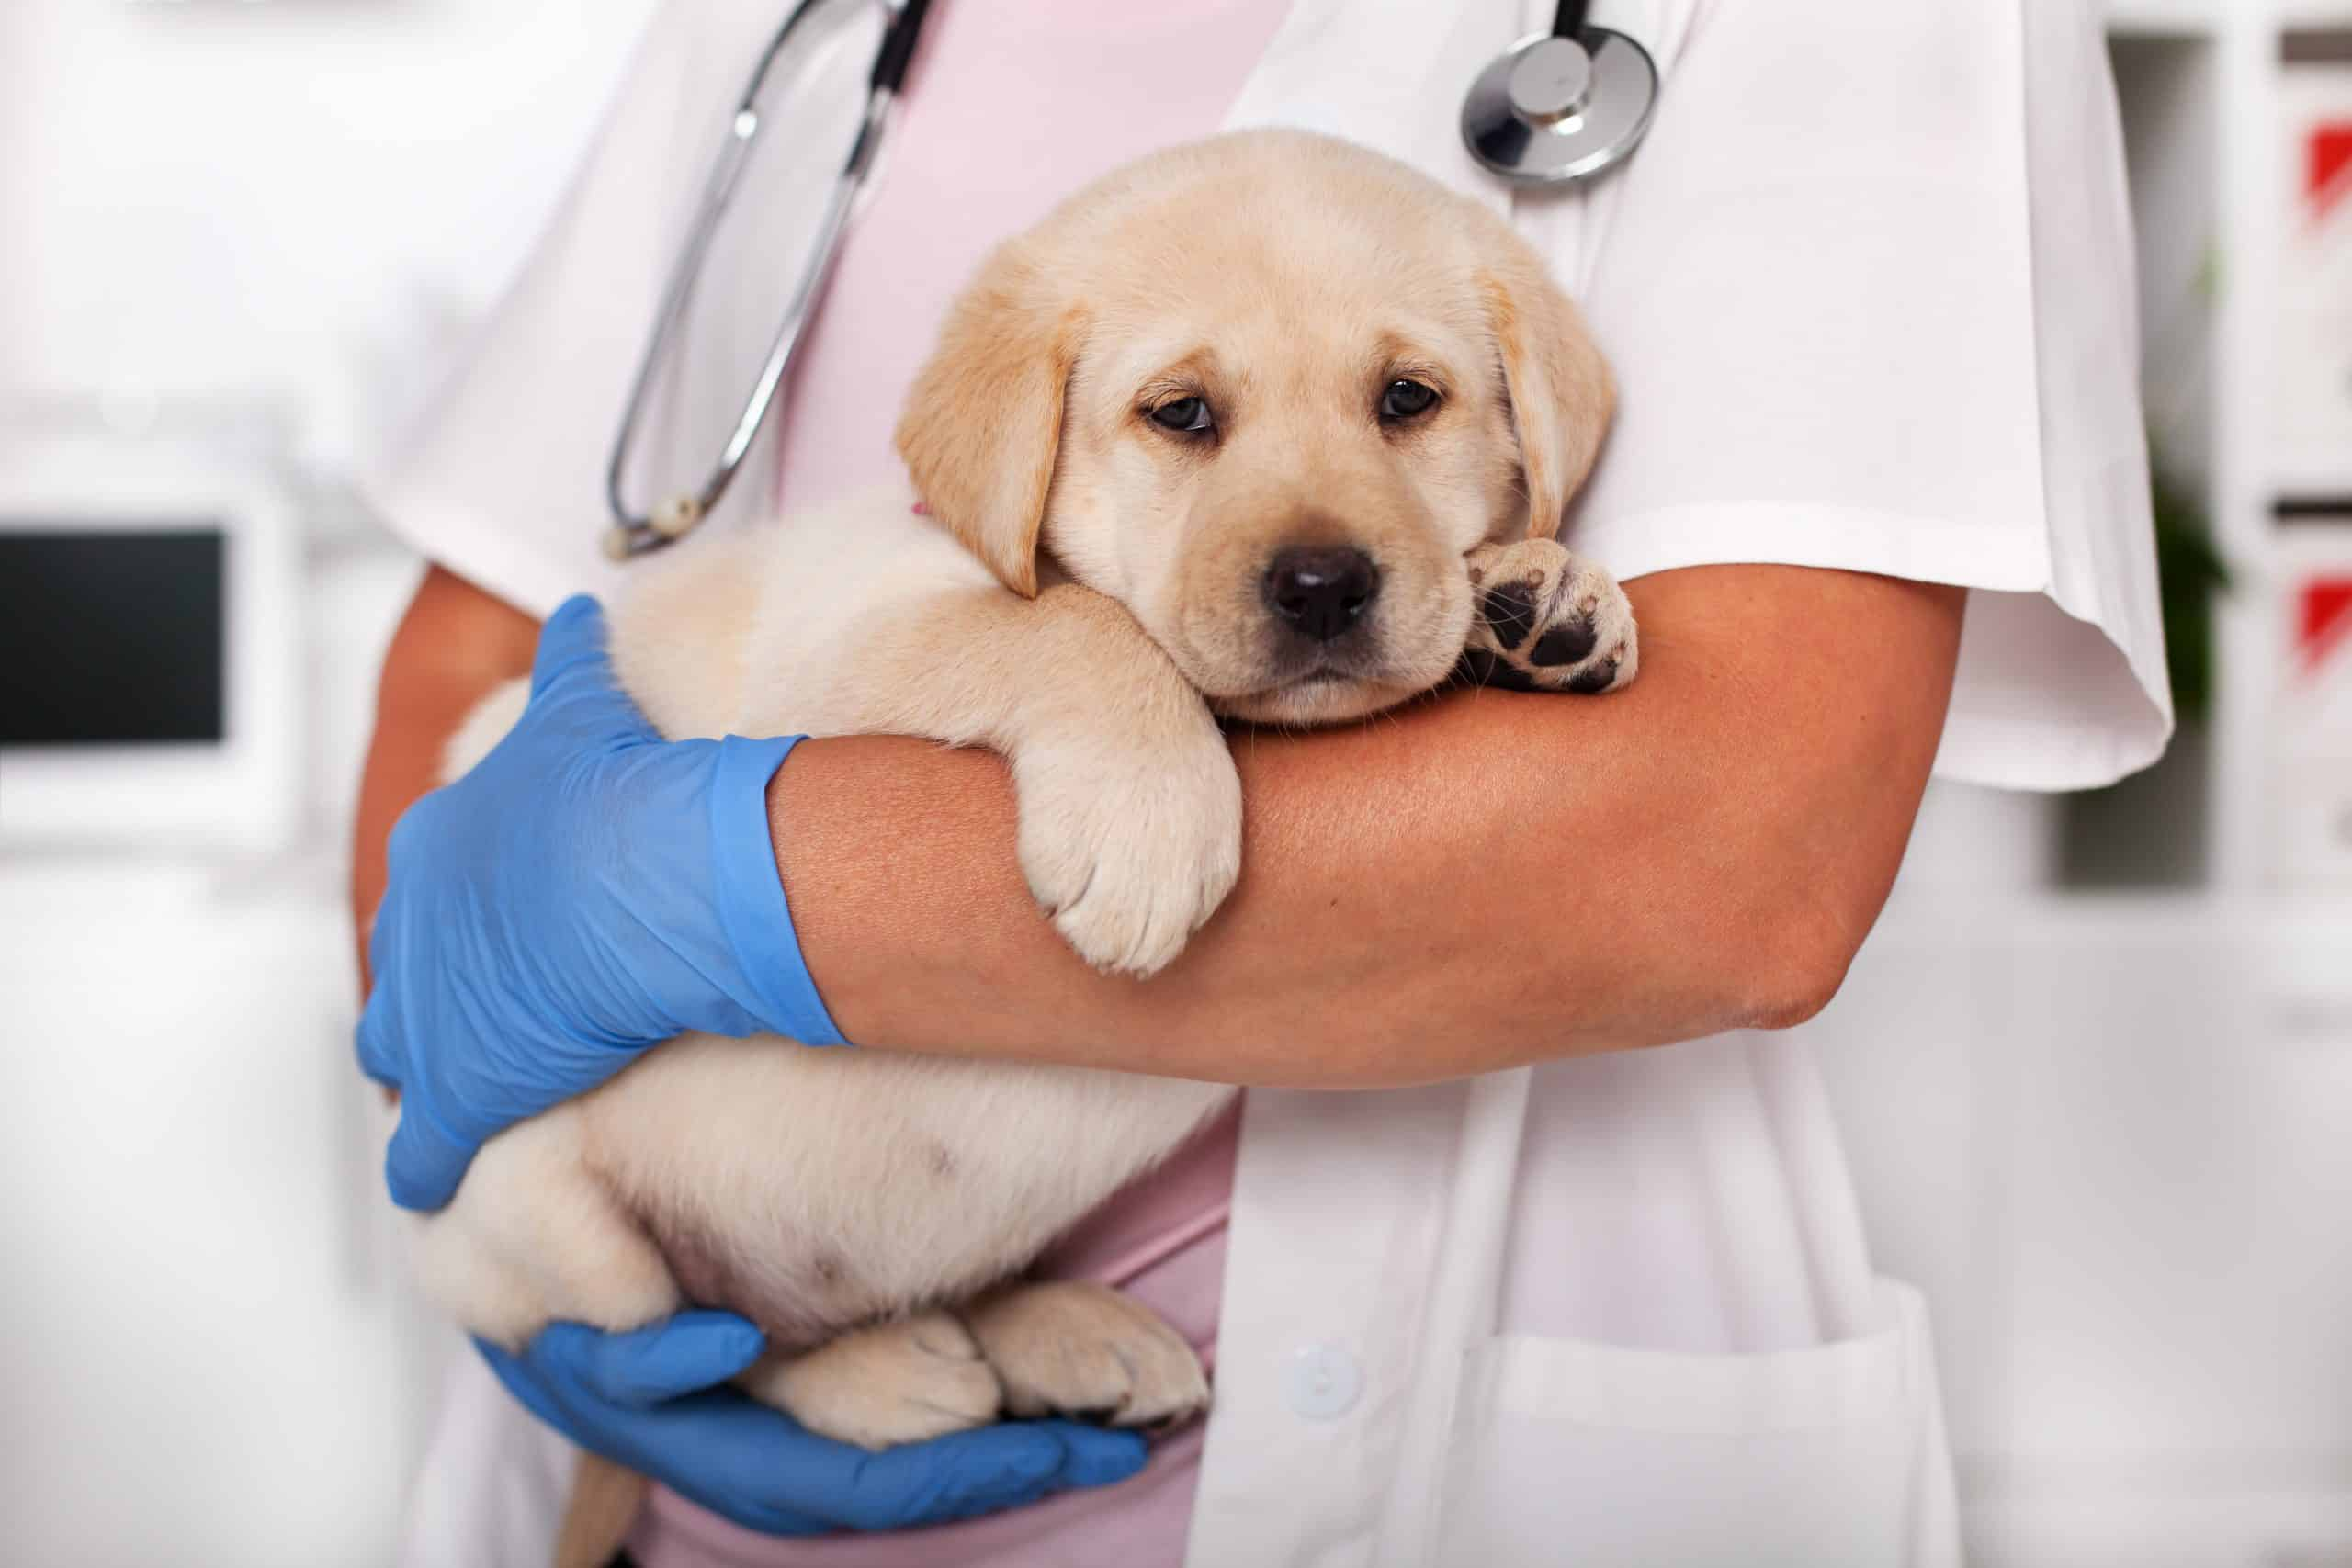 Cute labrador puppy dog sitting confortably in the arms of veterinary healthcare professional